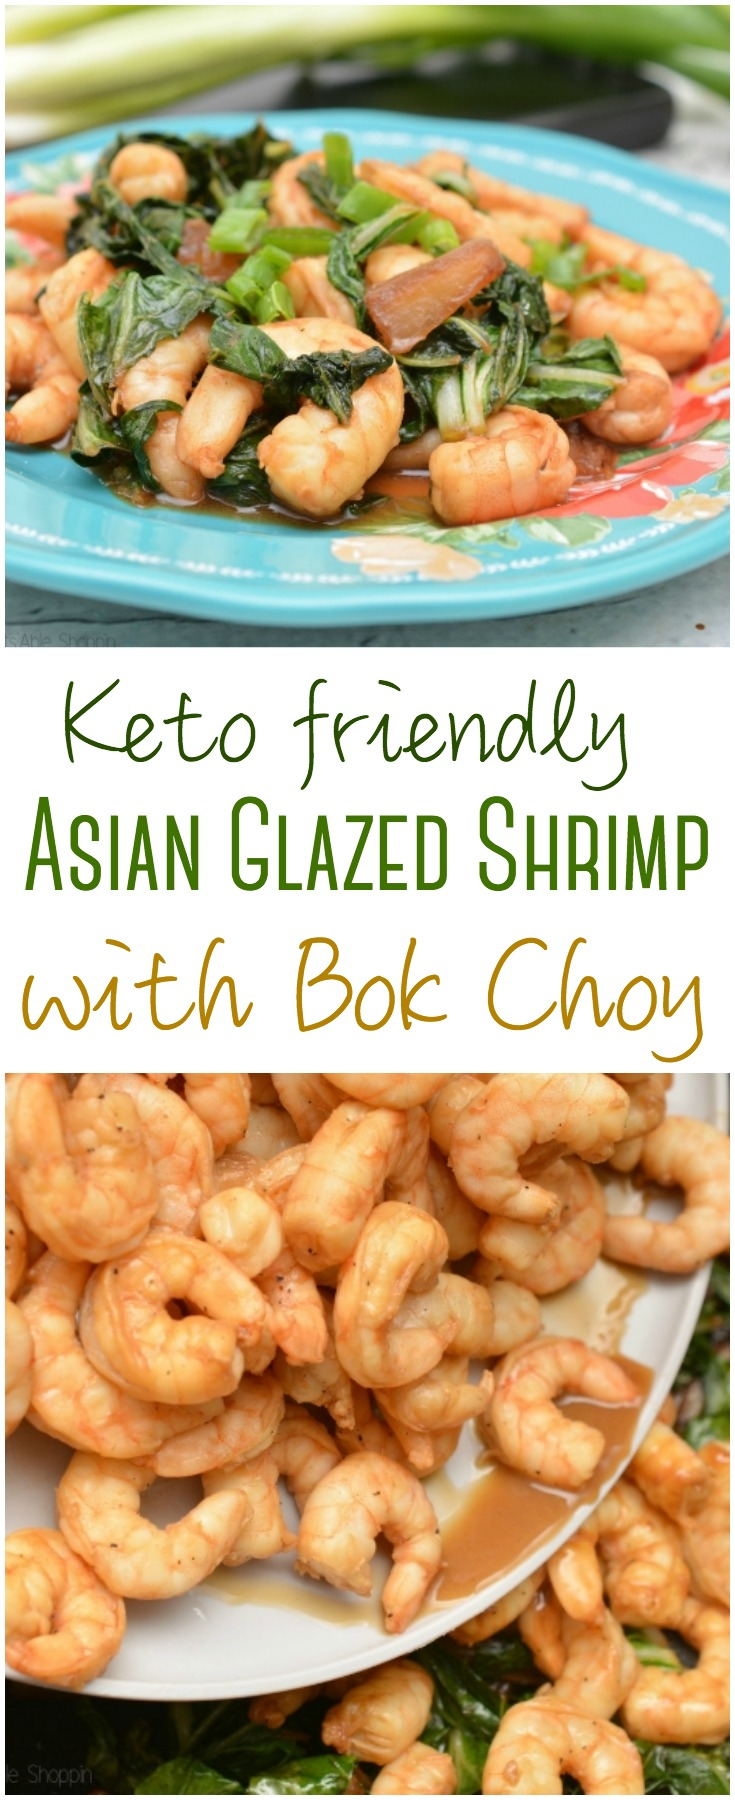 A simple recipe that doesn't skimp on taste, this Asian Glazed Shrimp with Bok Choy is Keto-friendly, simple, and delicious!